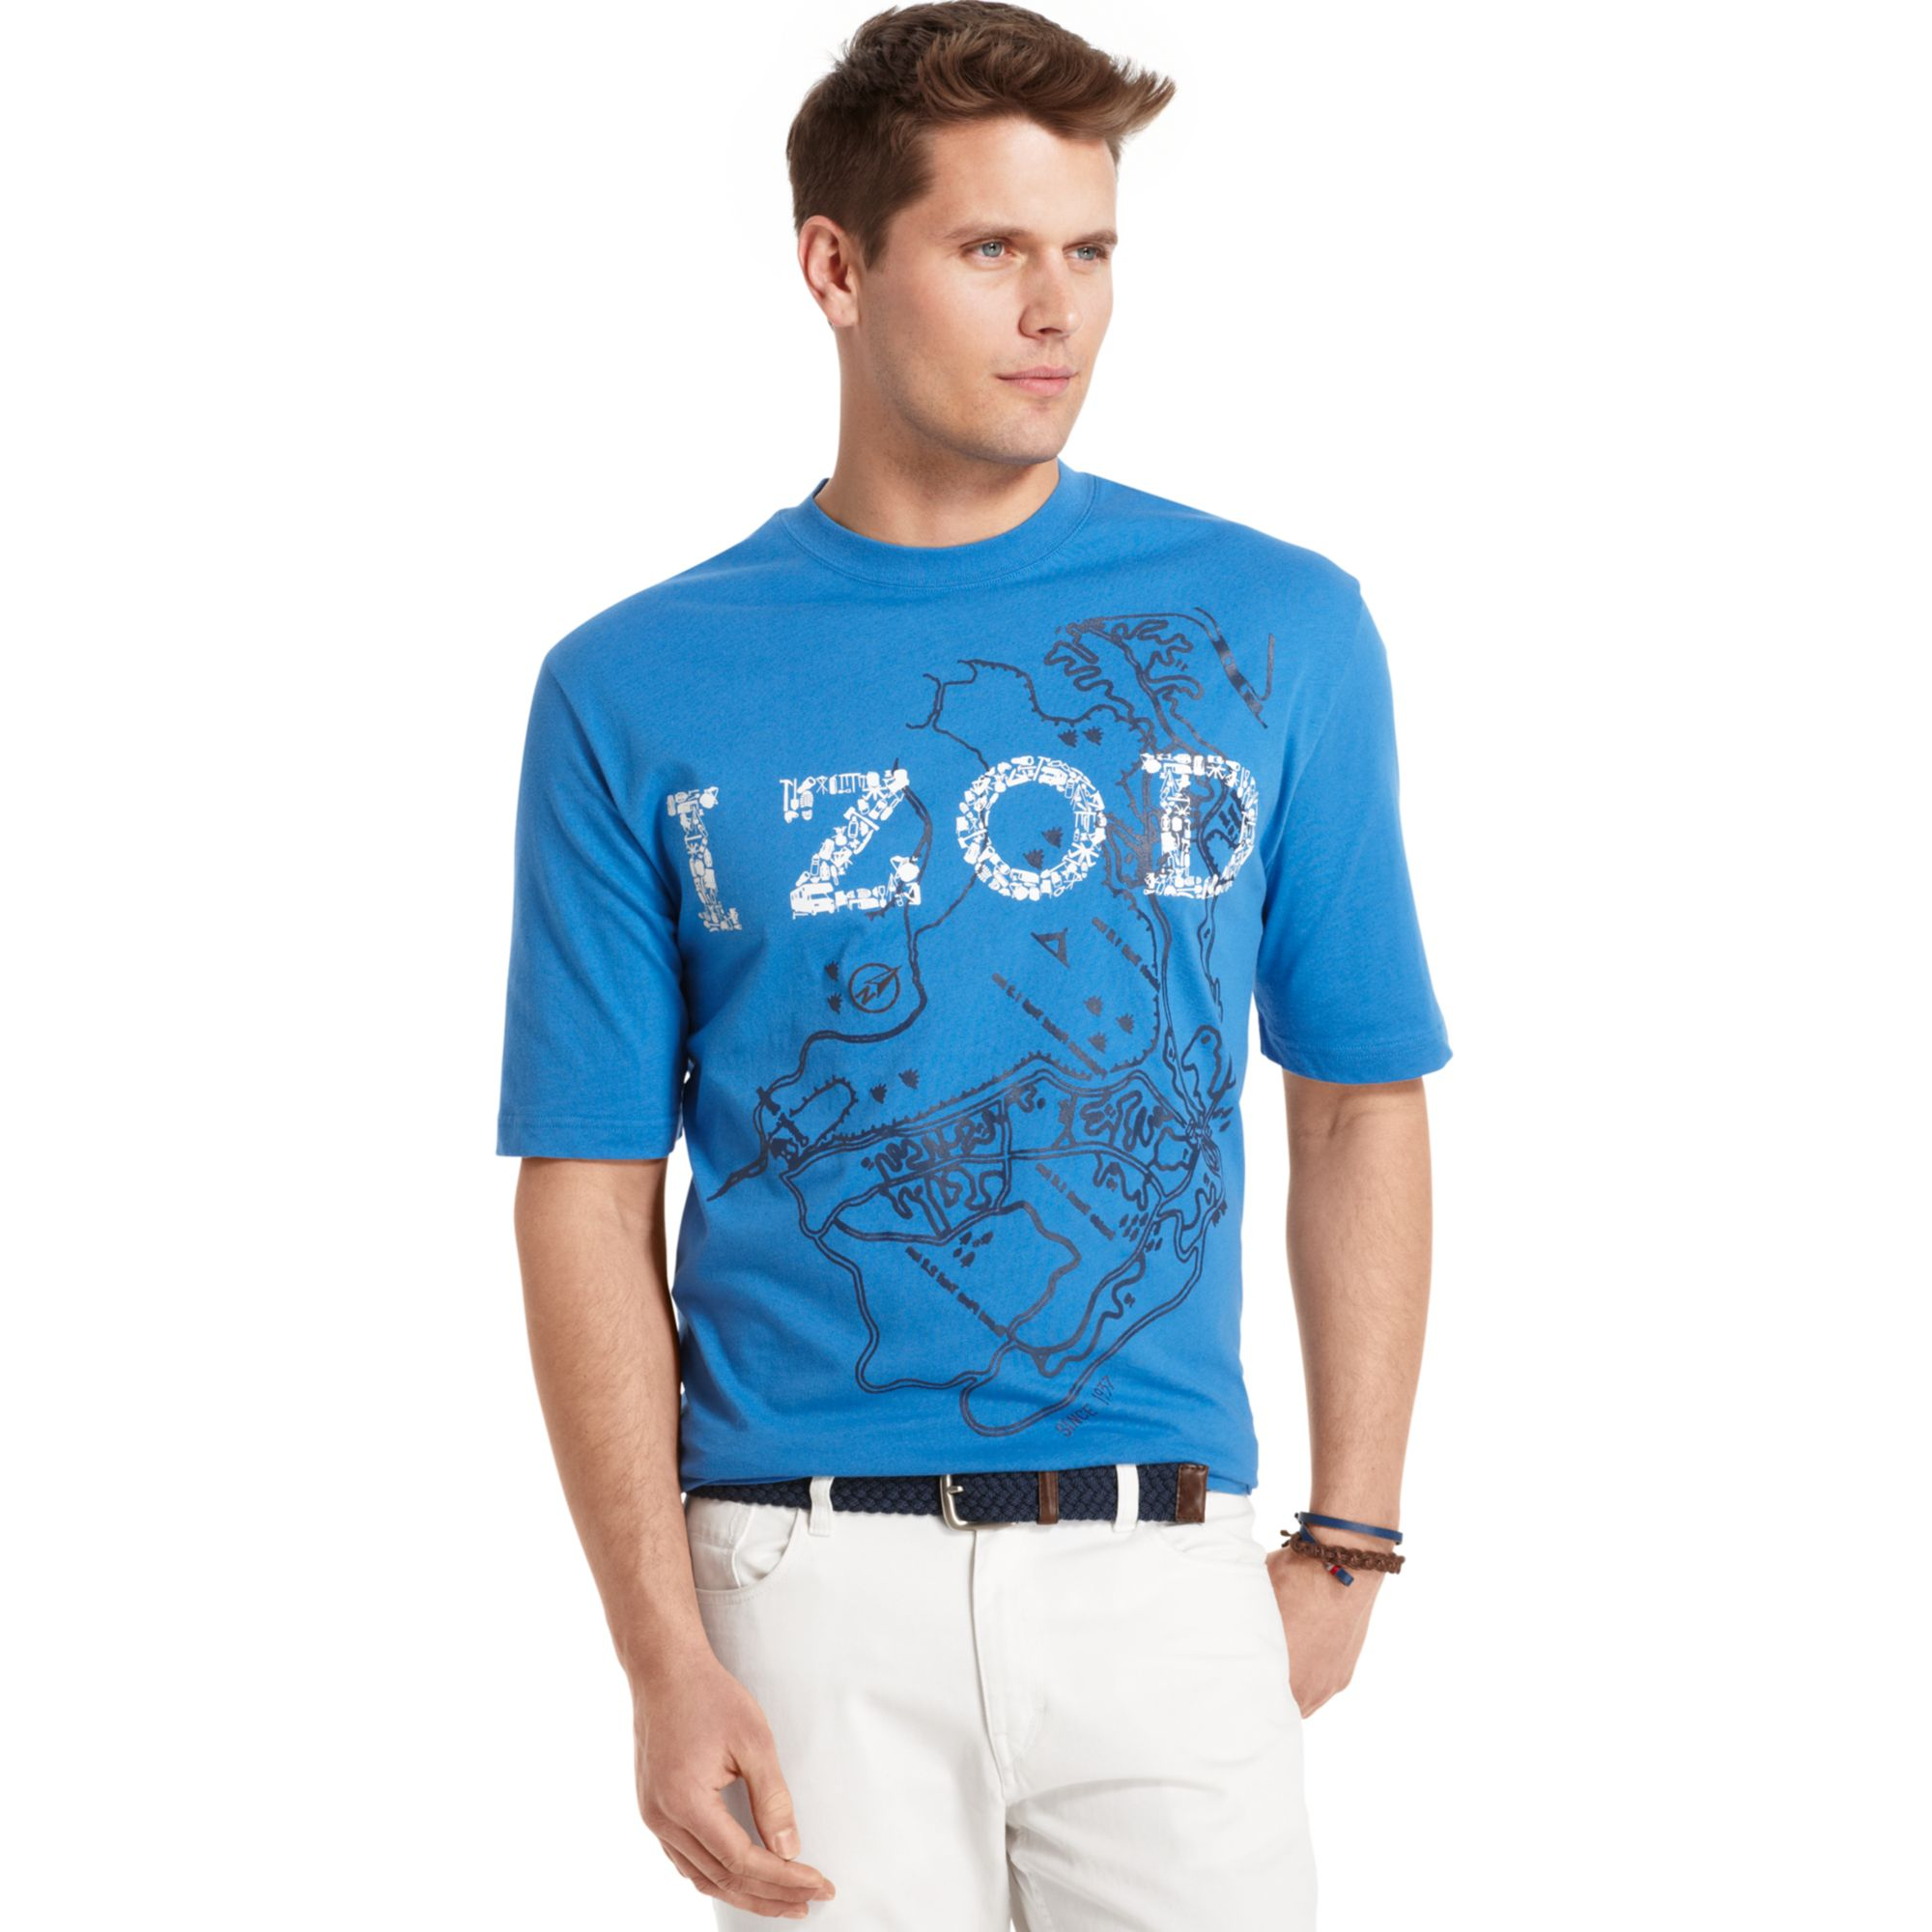 Izod big and tall map graphic tshirt in blue for men deep for Izod big and tall shirts